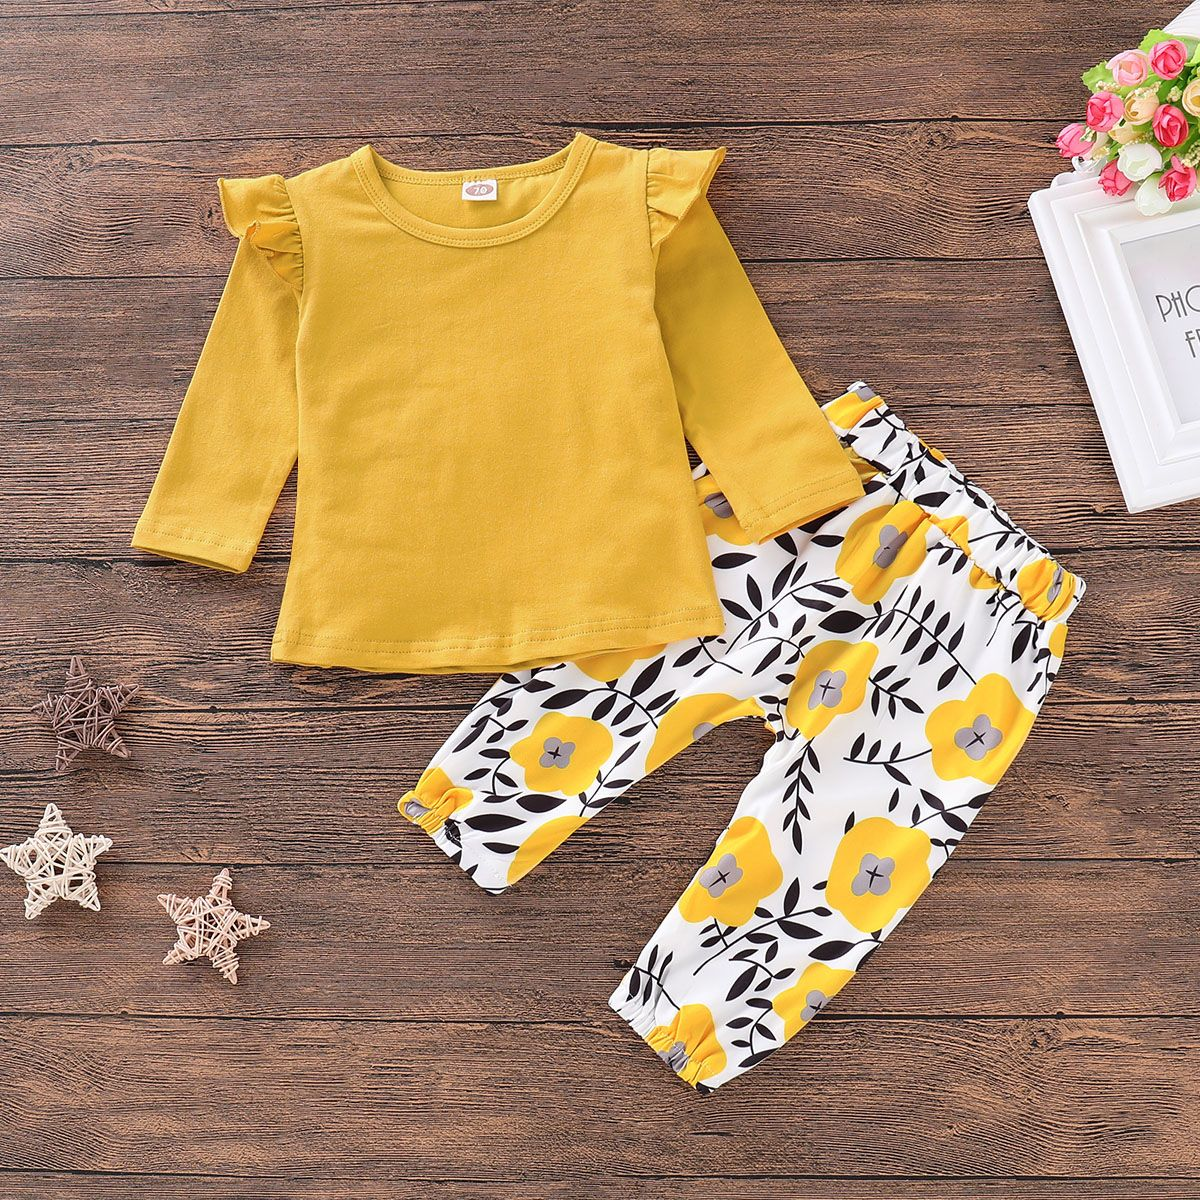 Cute Toddler Baby Girl Outfits Kid Fall Spring Long Sleeve Top Shirt Ruffle Floral Pants Clothes Set